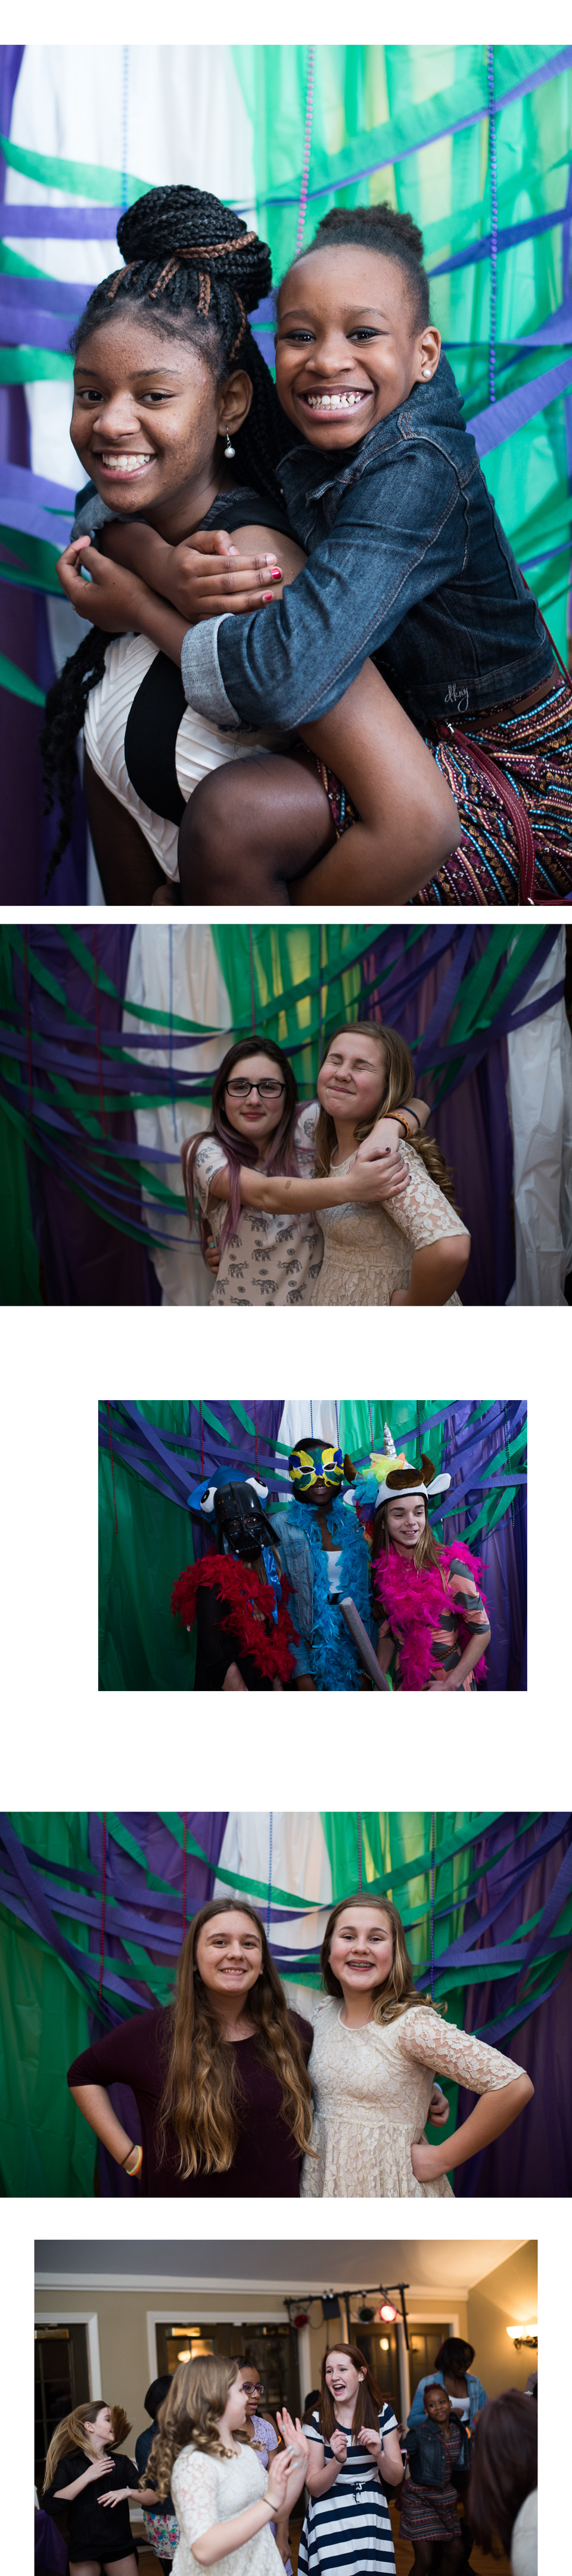 Gracie's 13th Birthday Party and Photobooth